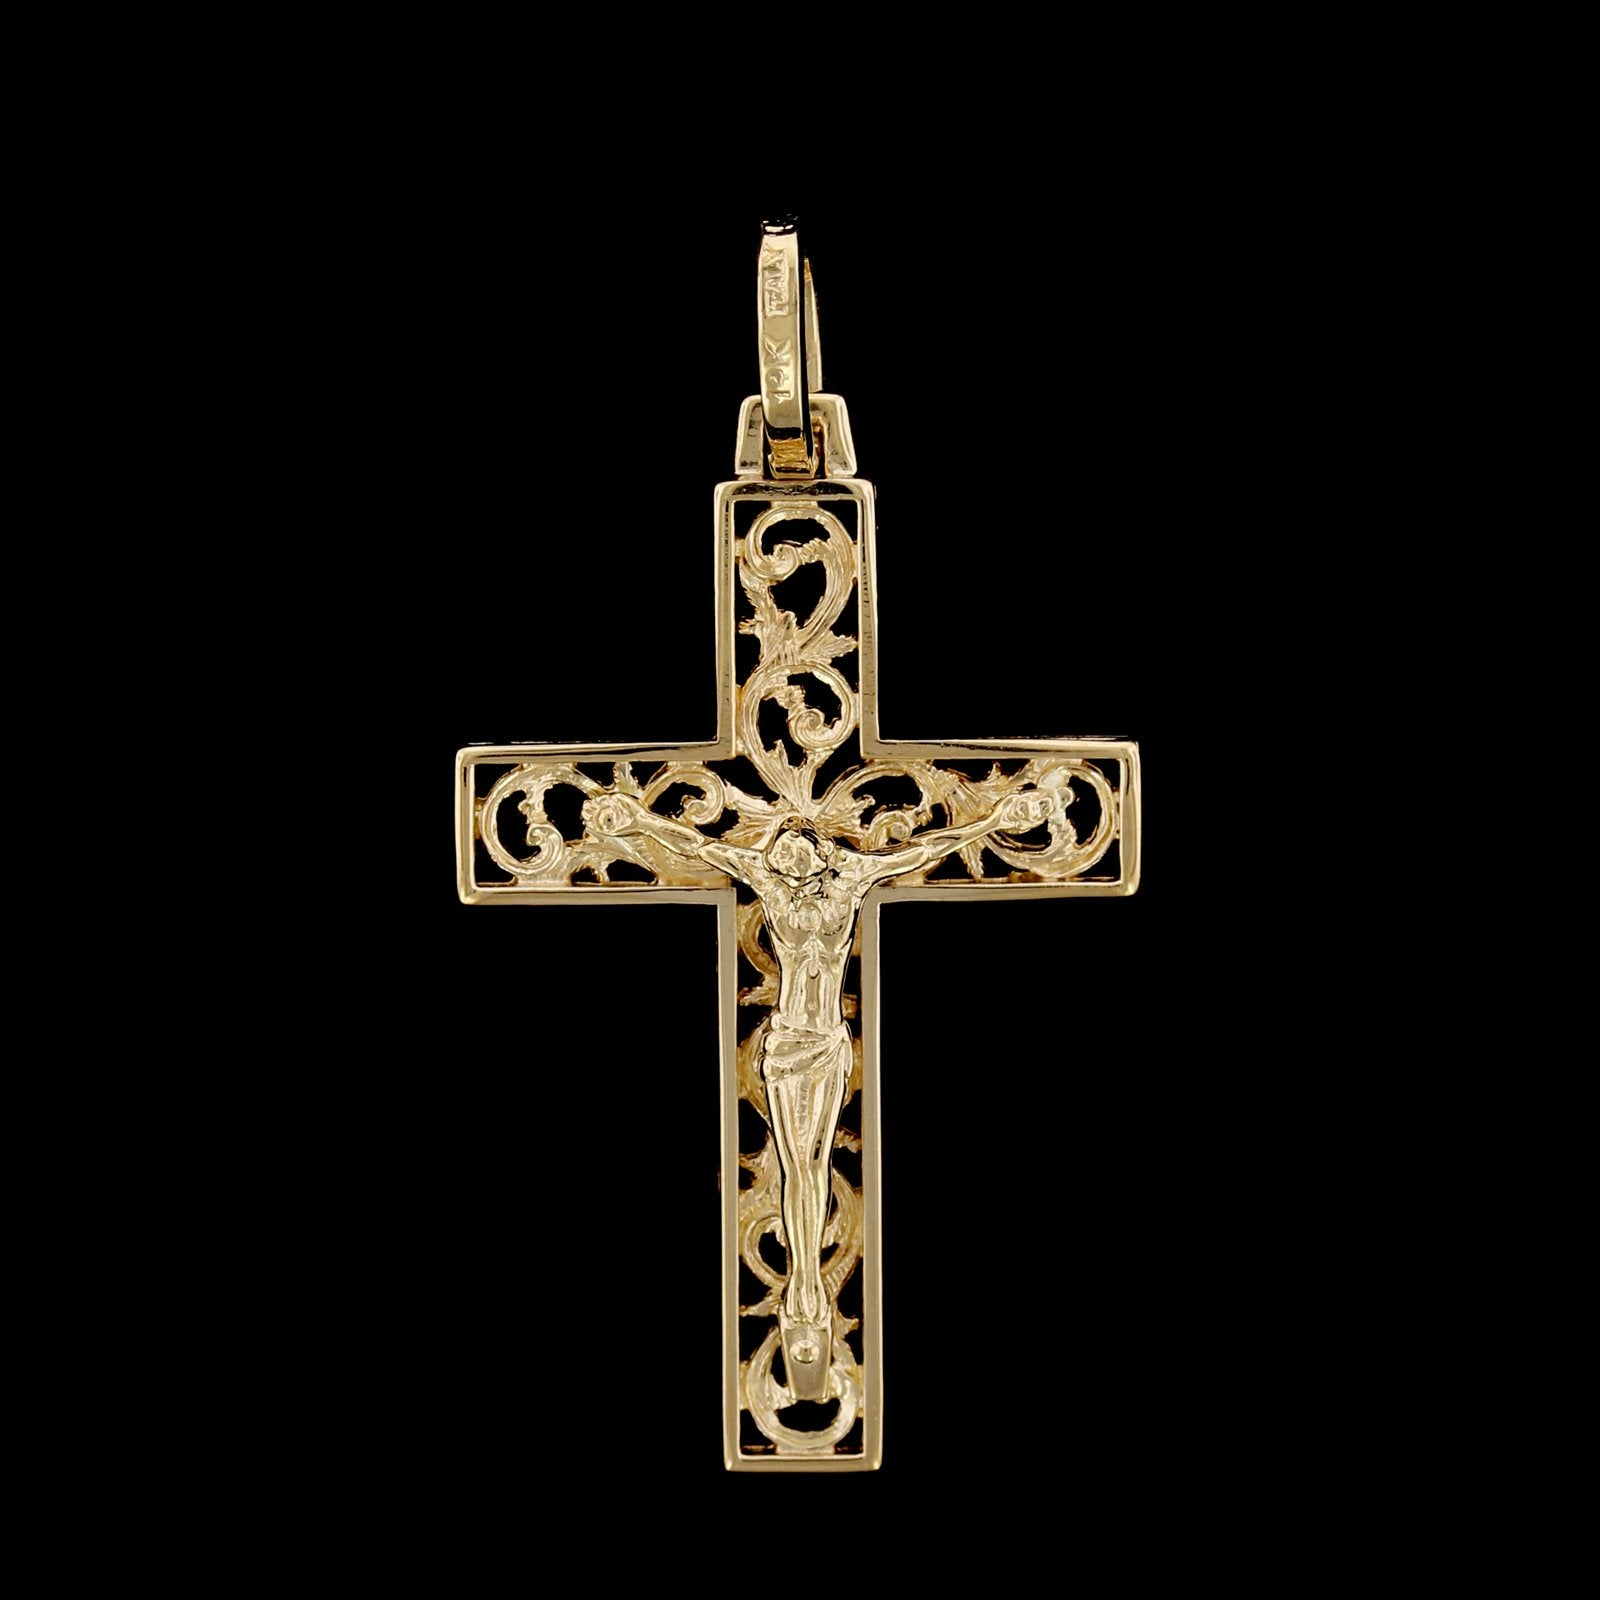 14K Yellow Gold Estate Crucifix Cross